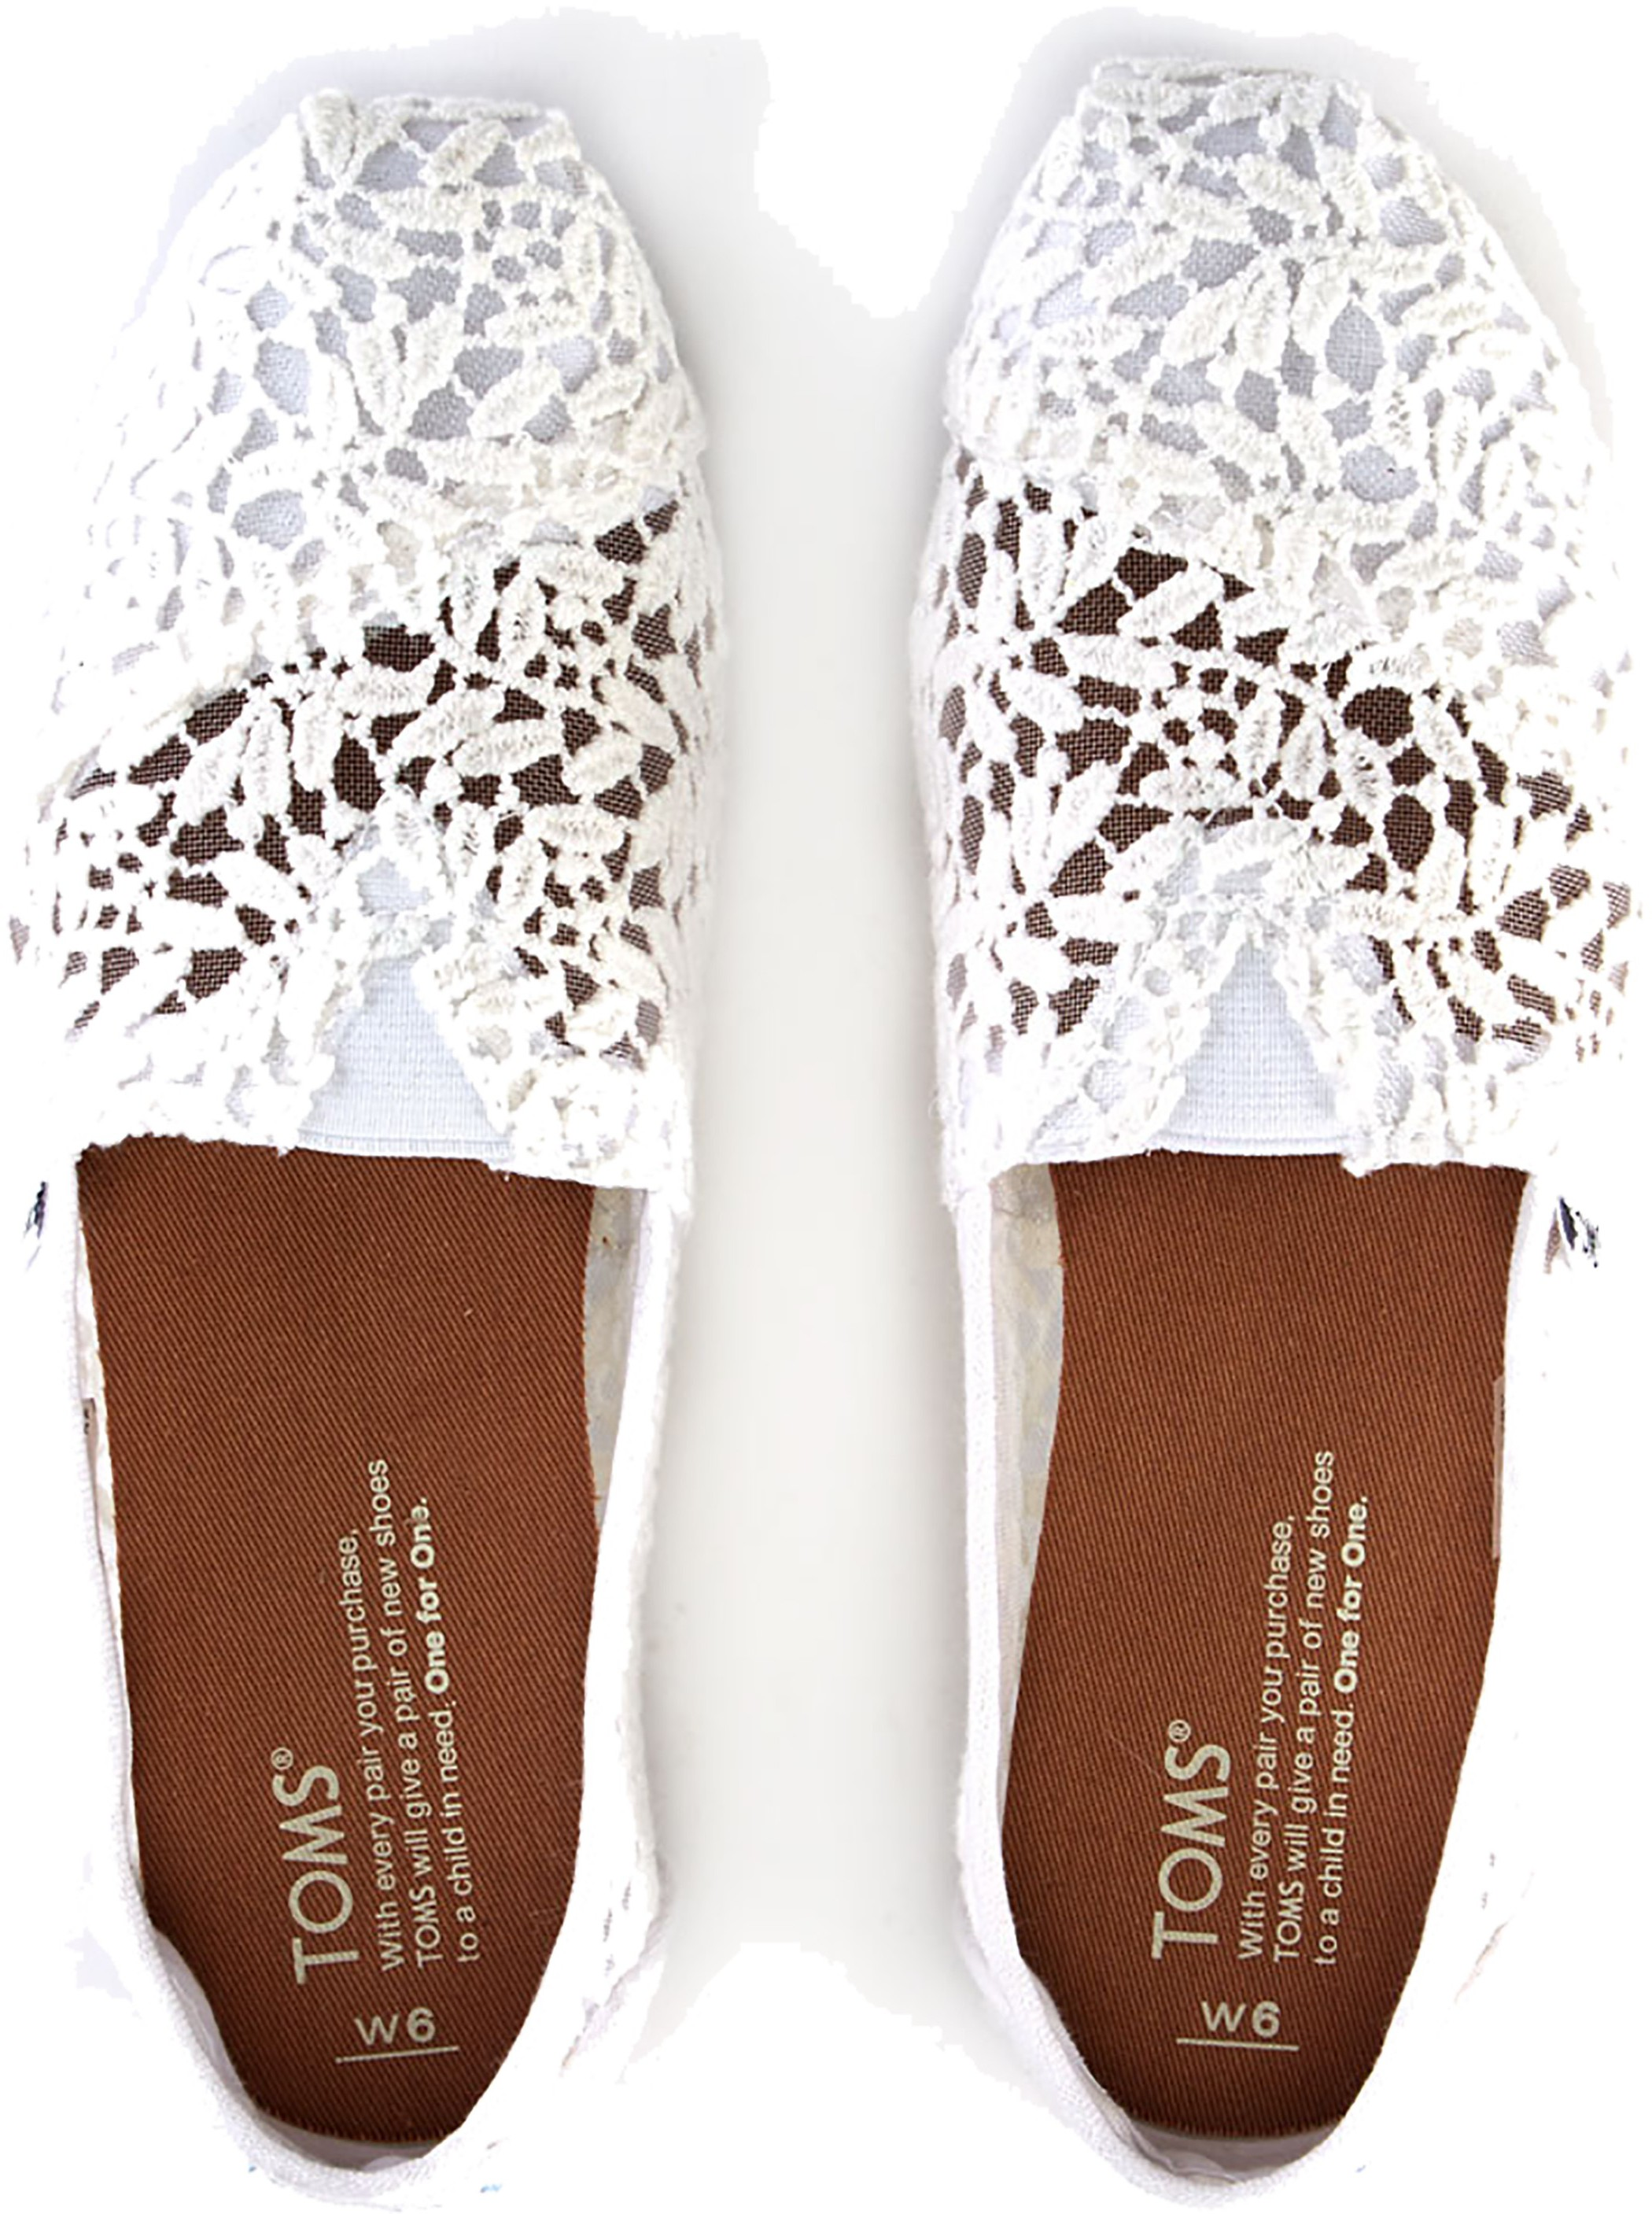 44440cd4b63f Womens Toms Seasonal Classic Slip on White Lace Leaves Flats UK 5. About  this product. Picture 1 of 4  Picture 2 of 4  Picture 3 of 4 ...